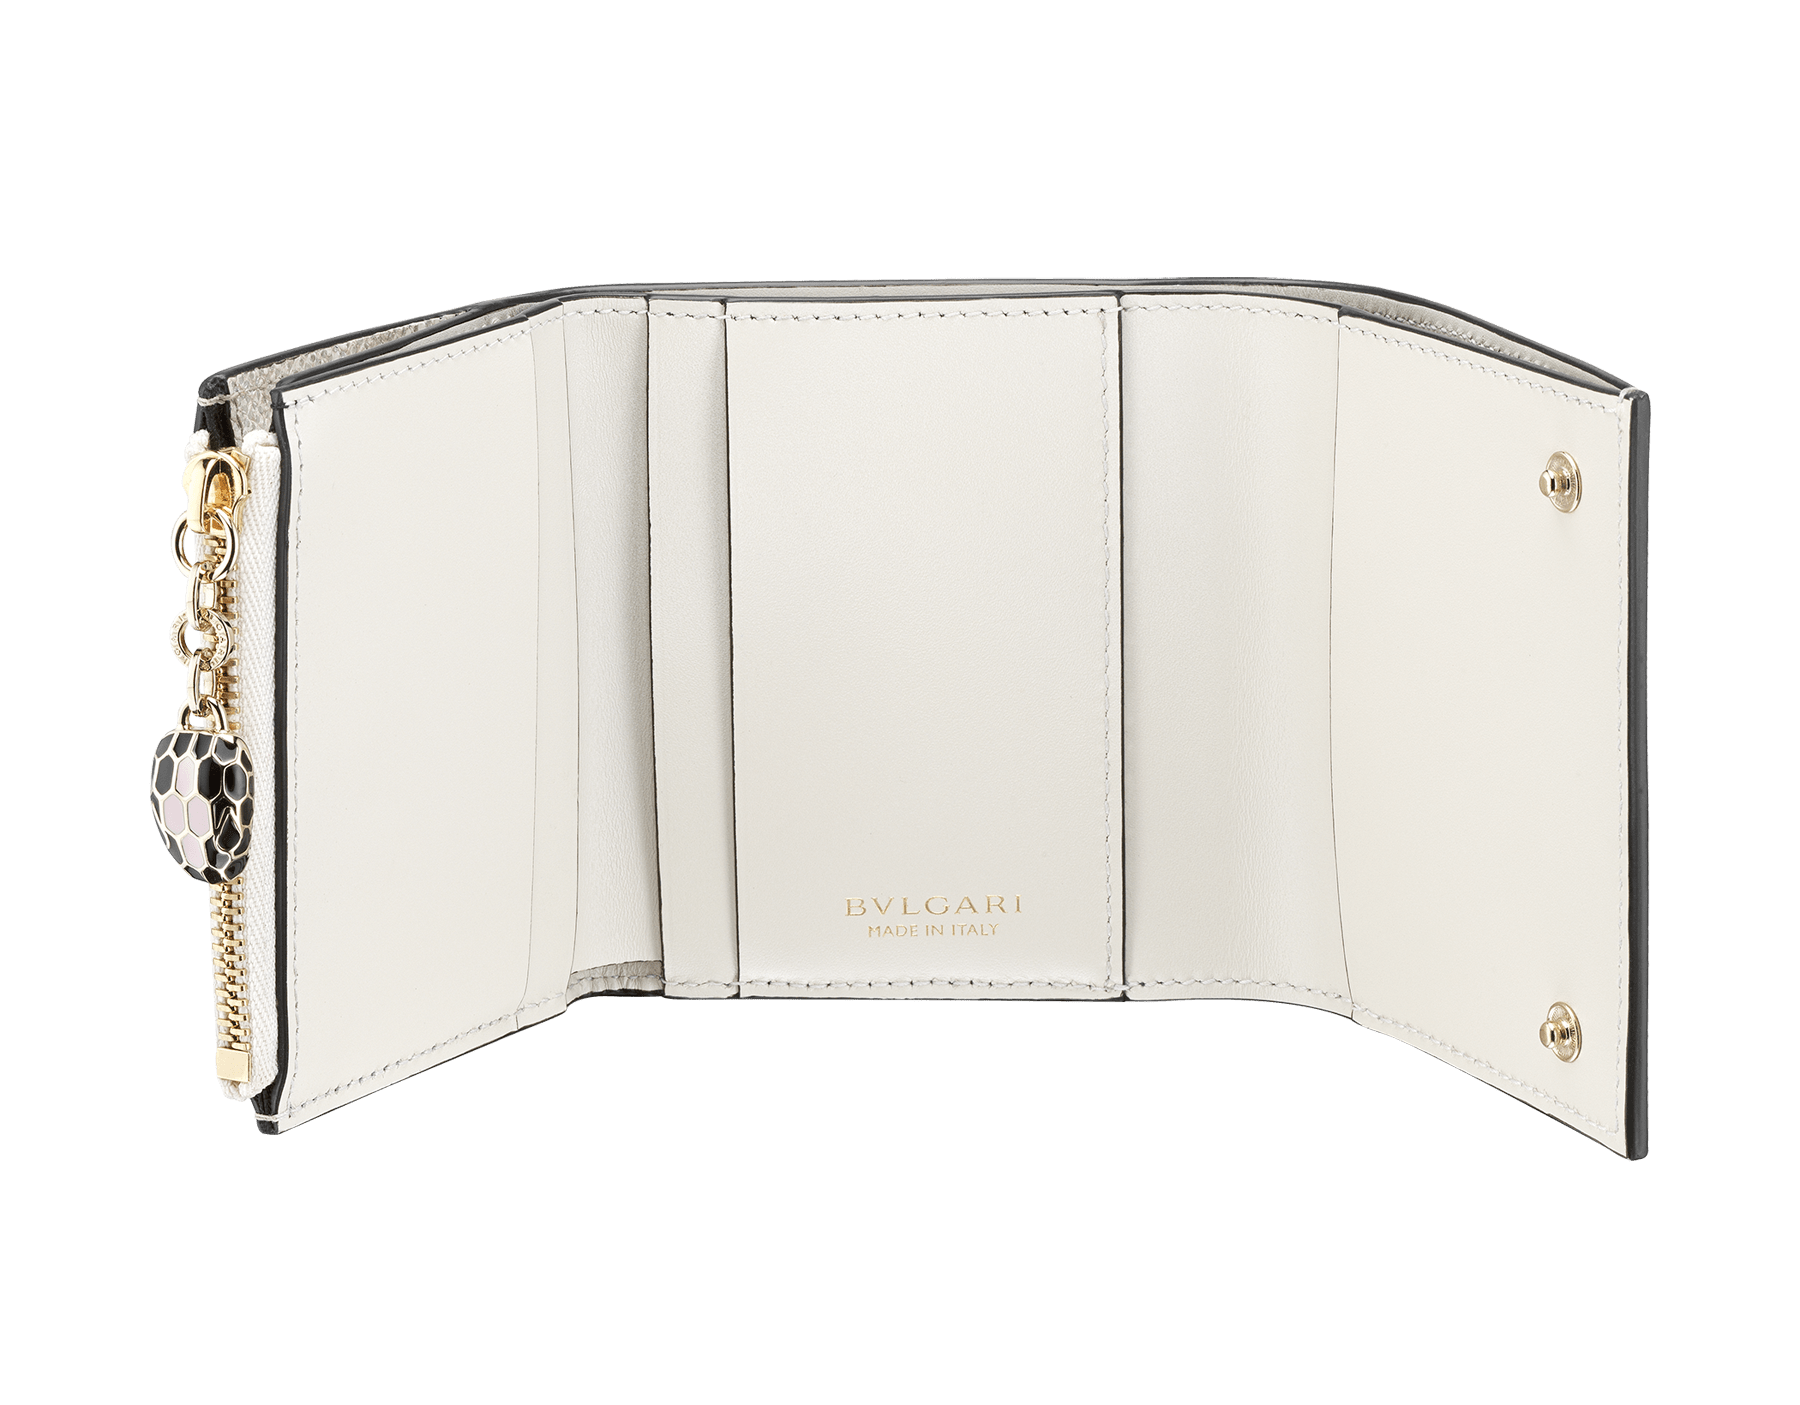 Serpenti Forever super compact wallet in milky opal metallic karung skin and milky opal calf leather. Iconic snakehead stud closure in black and glitter milky opal enamel, with black enamel eyes. SEA-SUPERCOMPACT-MK image 3